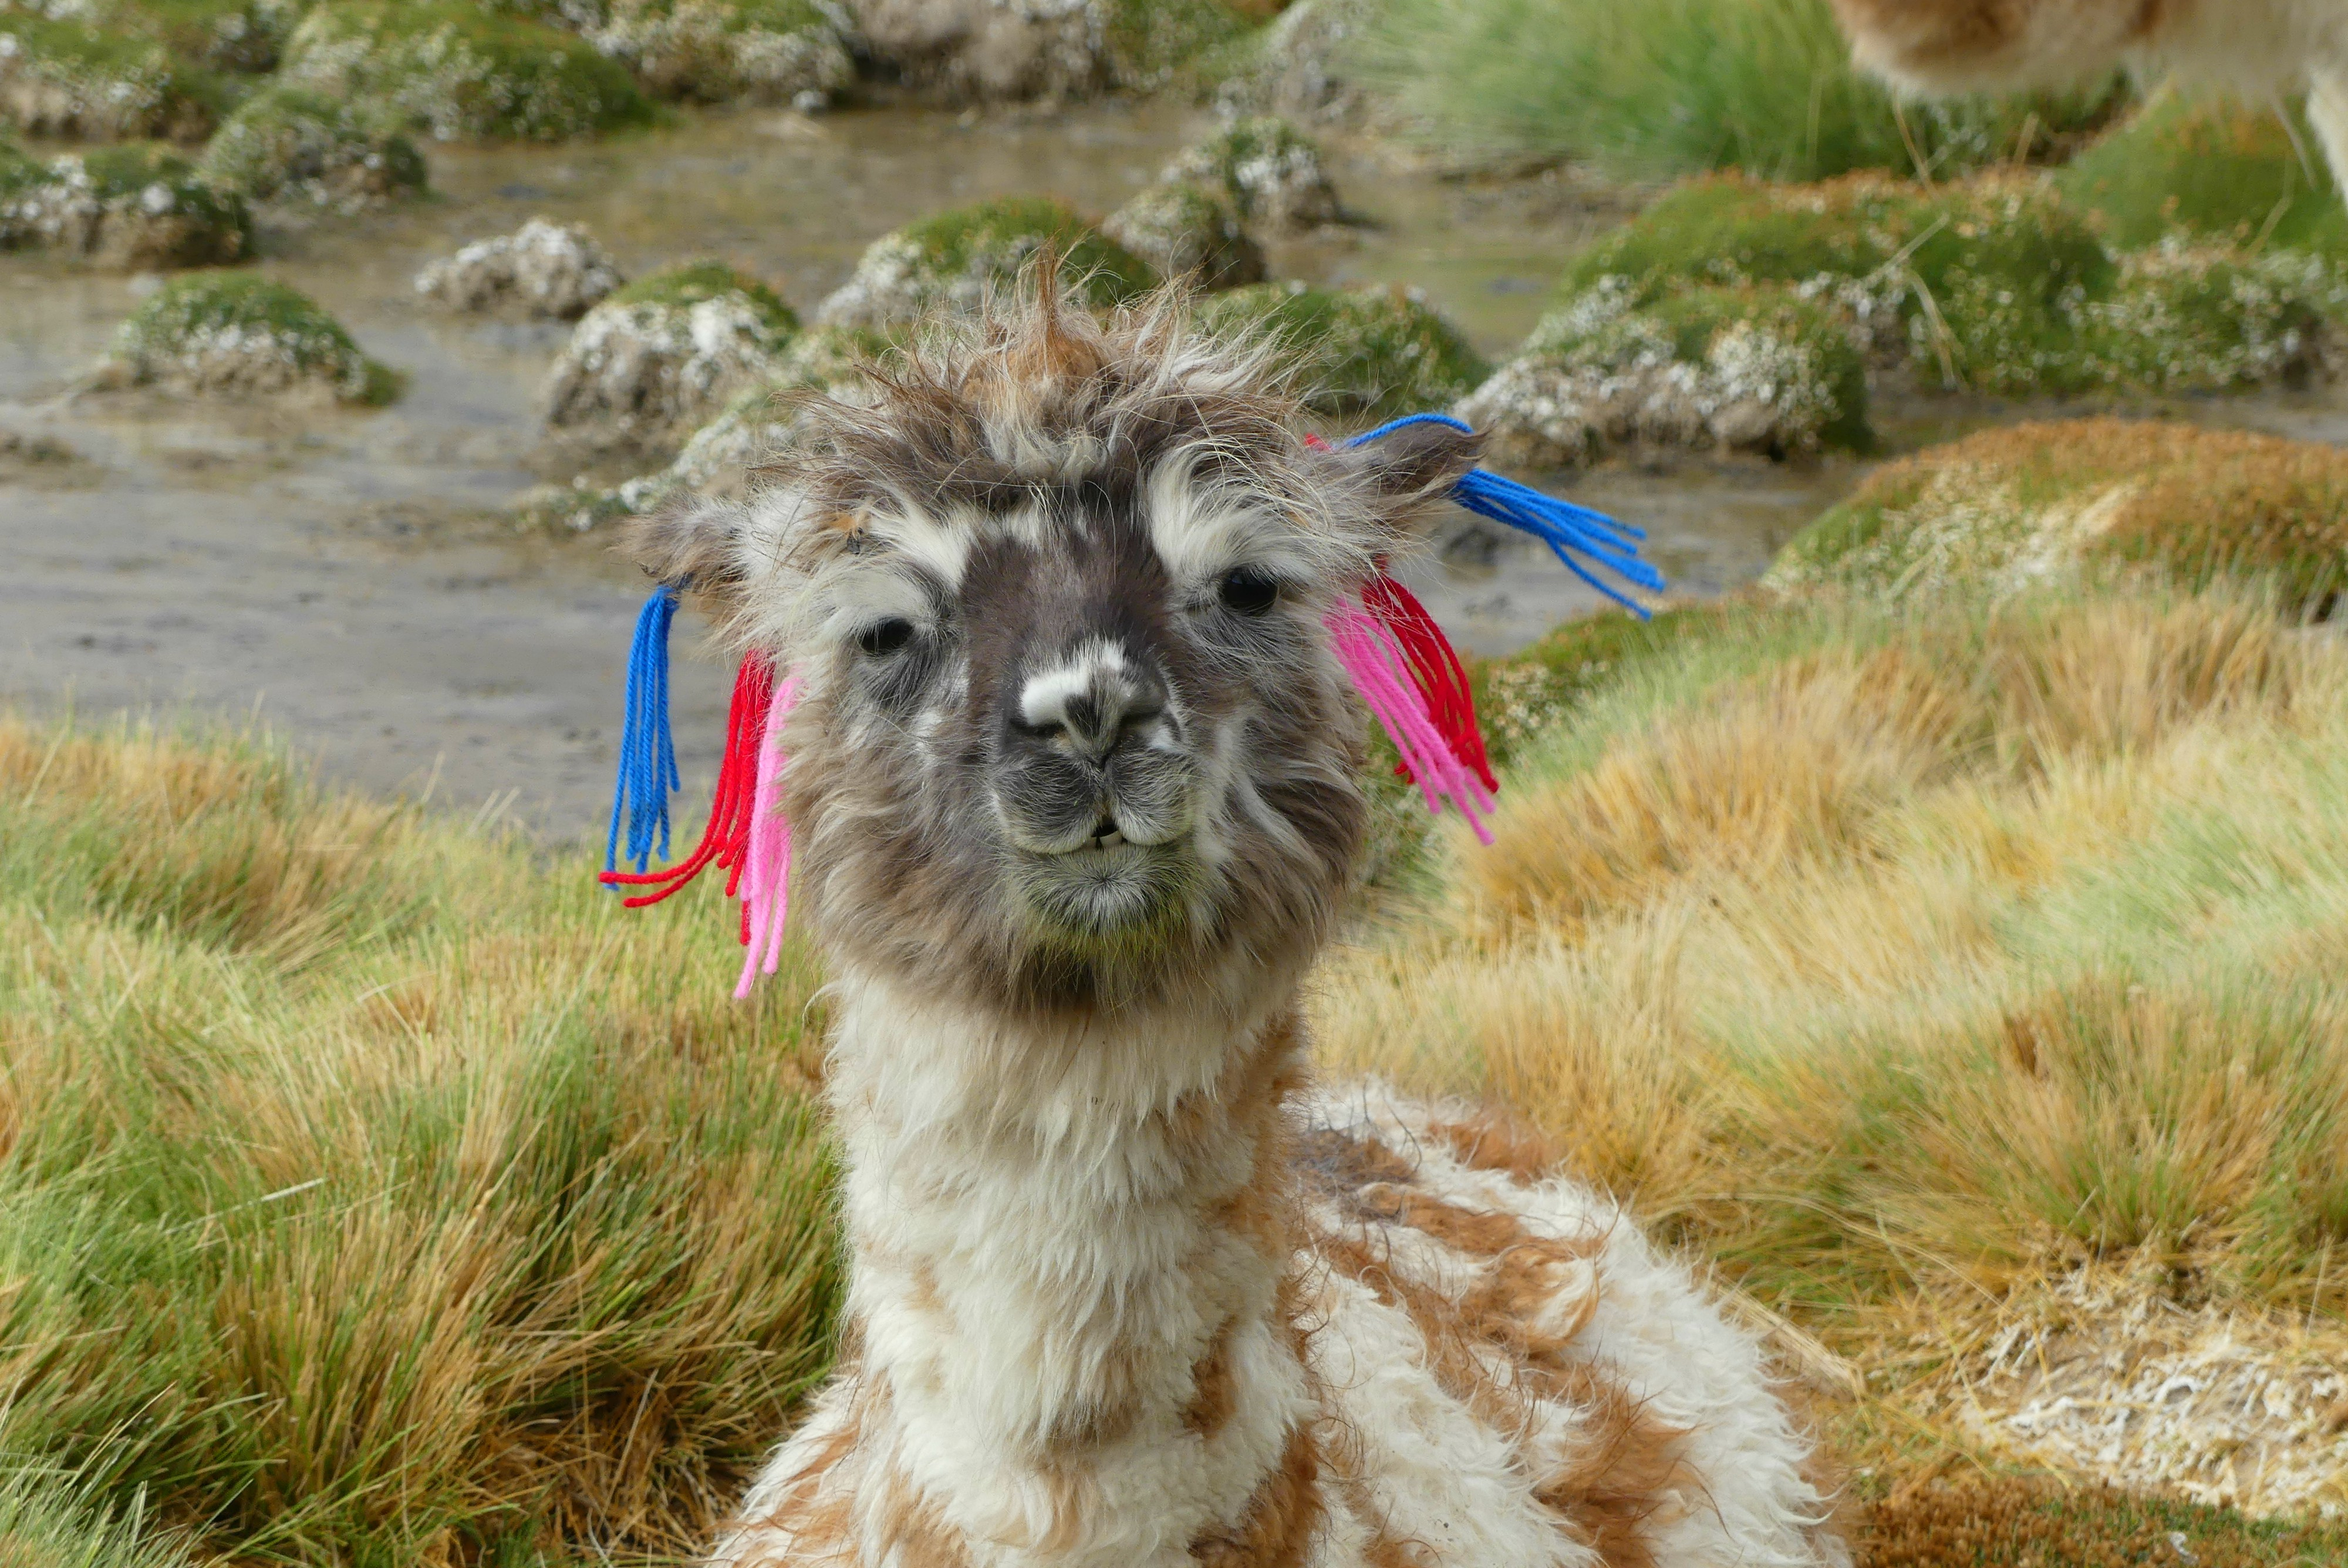 Lama in Chile